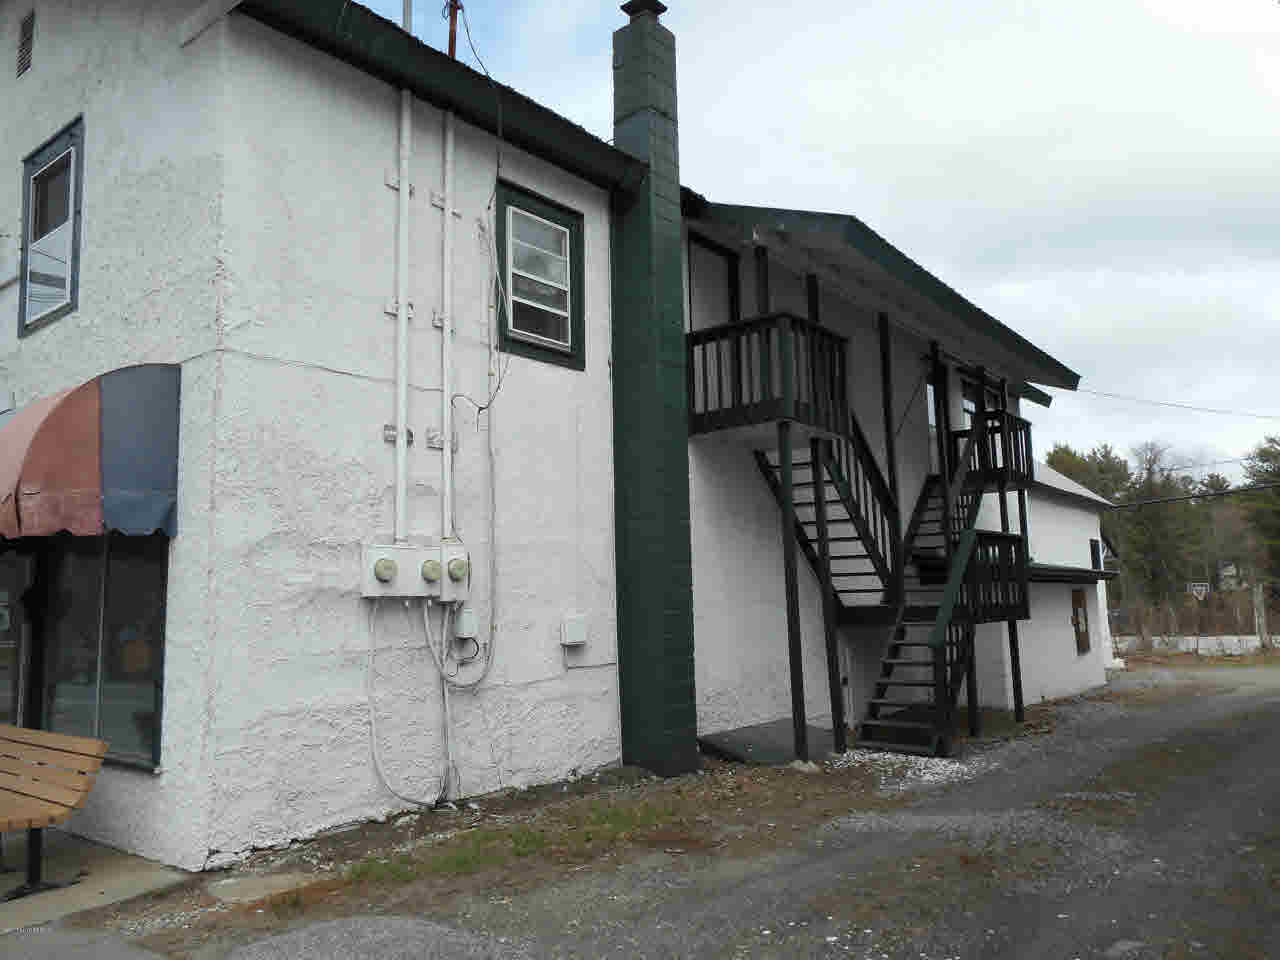 Chestertown image 3